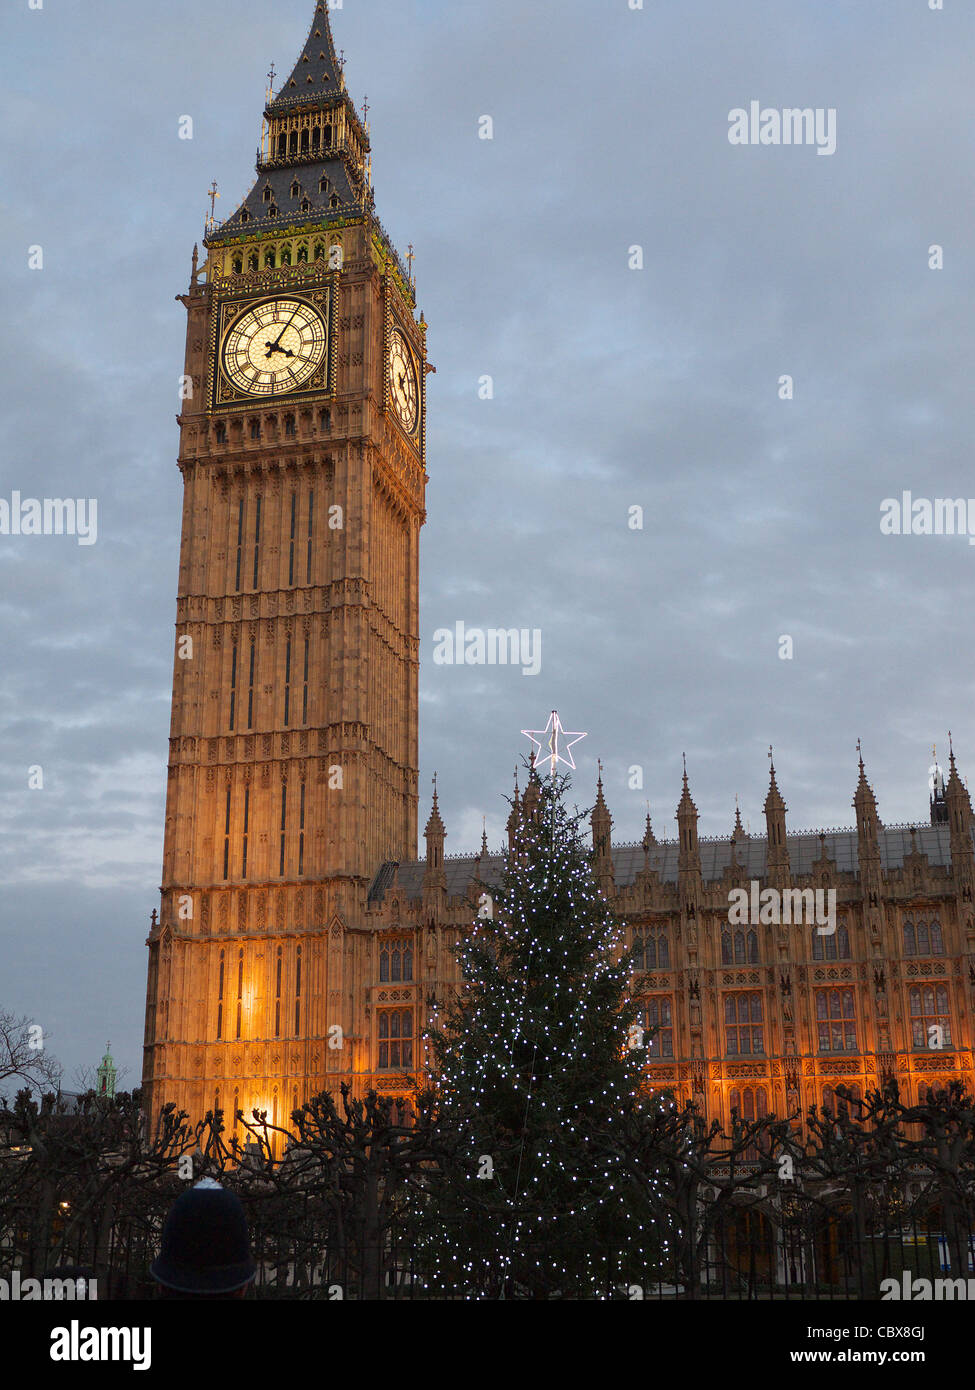 View of 'Big Ben' and Houses of Parliament London at early evening with a Christmas Tree in the foreground - Stock Image